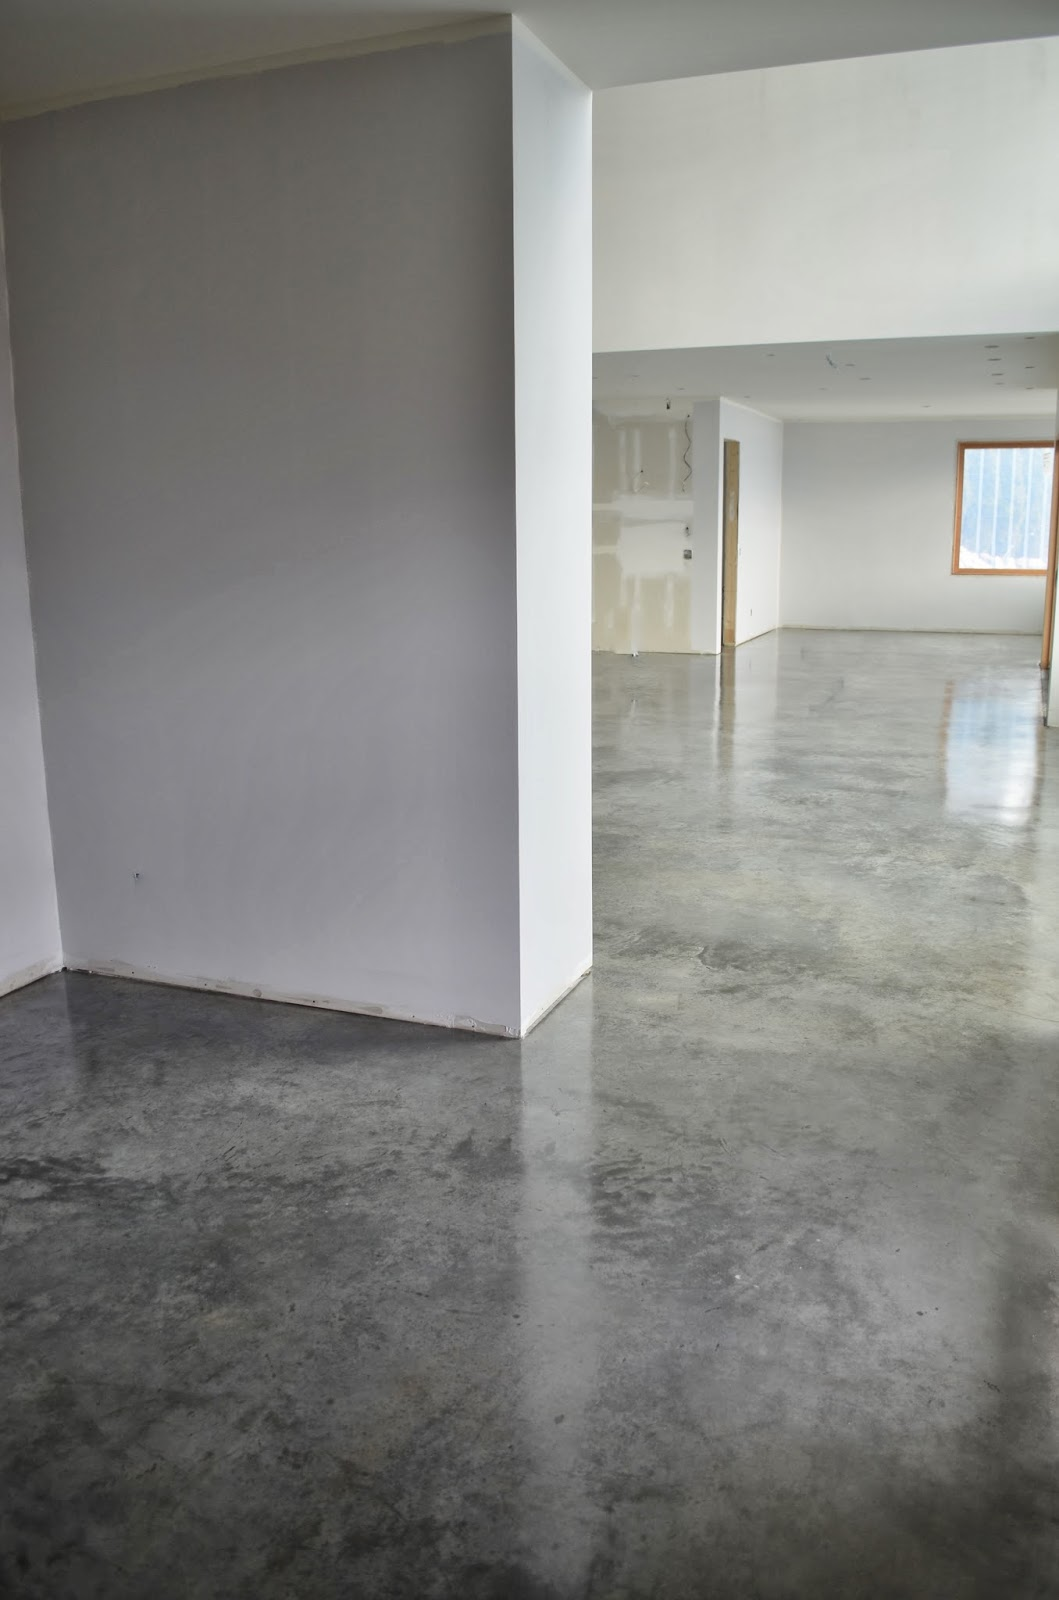 Mode concrete environmentally conscious concrete floors for How to shine cement floor